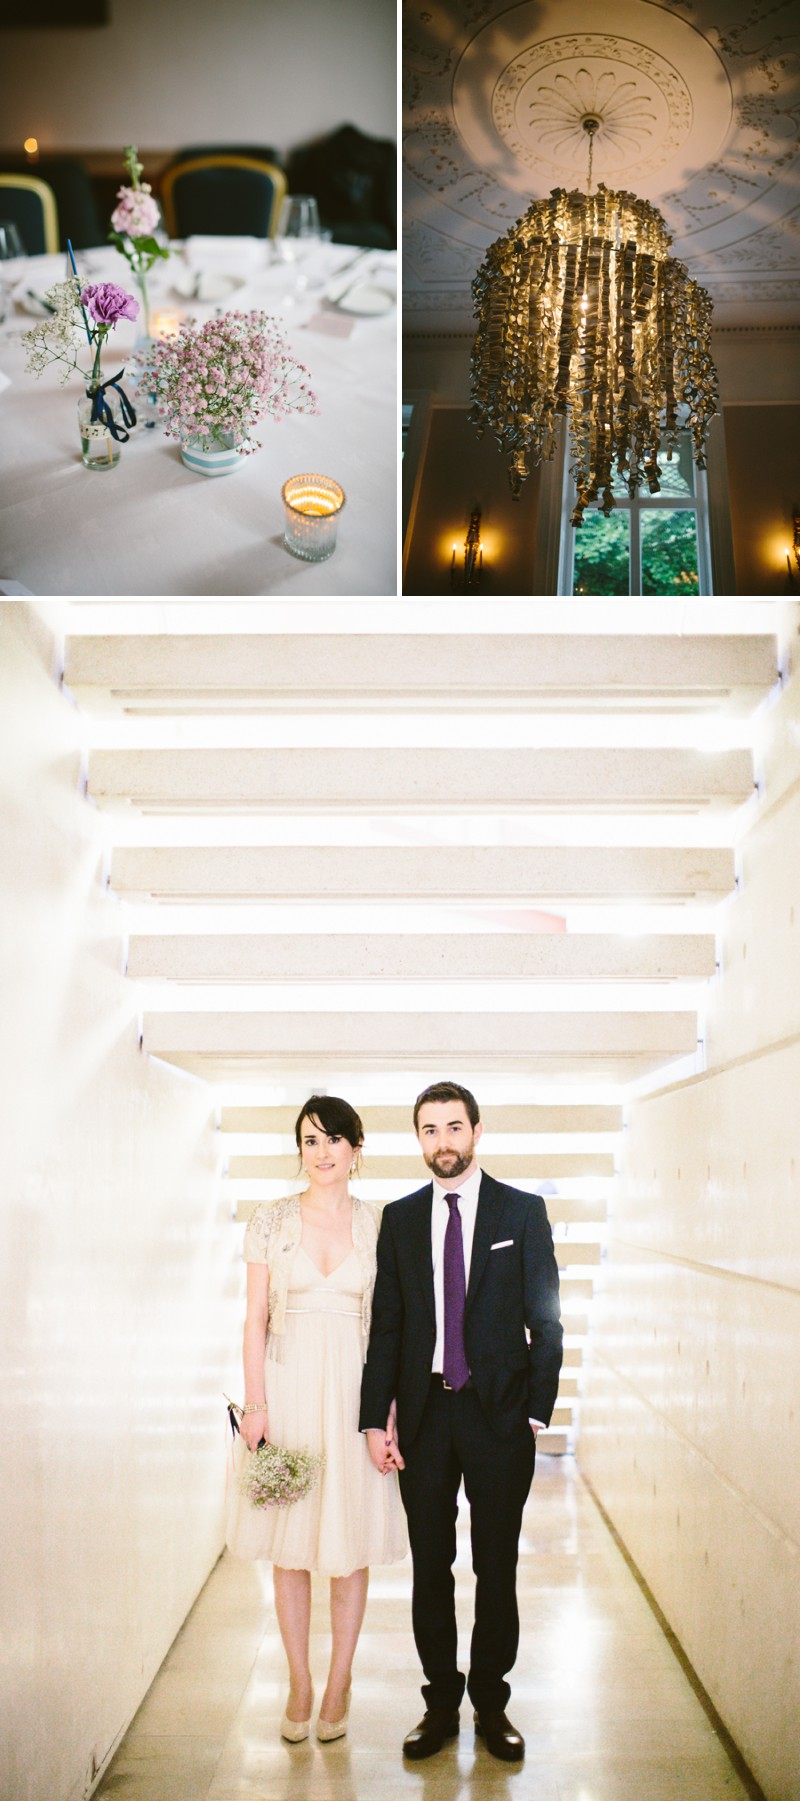 A Beautiful Intimate Modern City Wedding In Dublin With A Pink And Navy Colour Scheme And An Anoushka G Dress By Epic Love Photography._0009